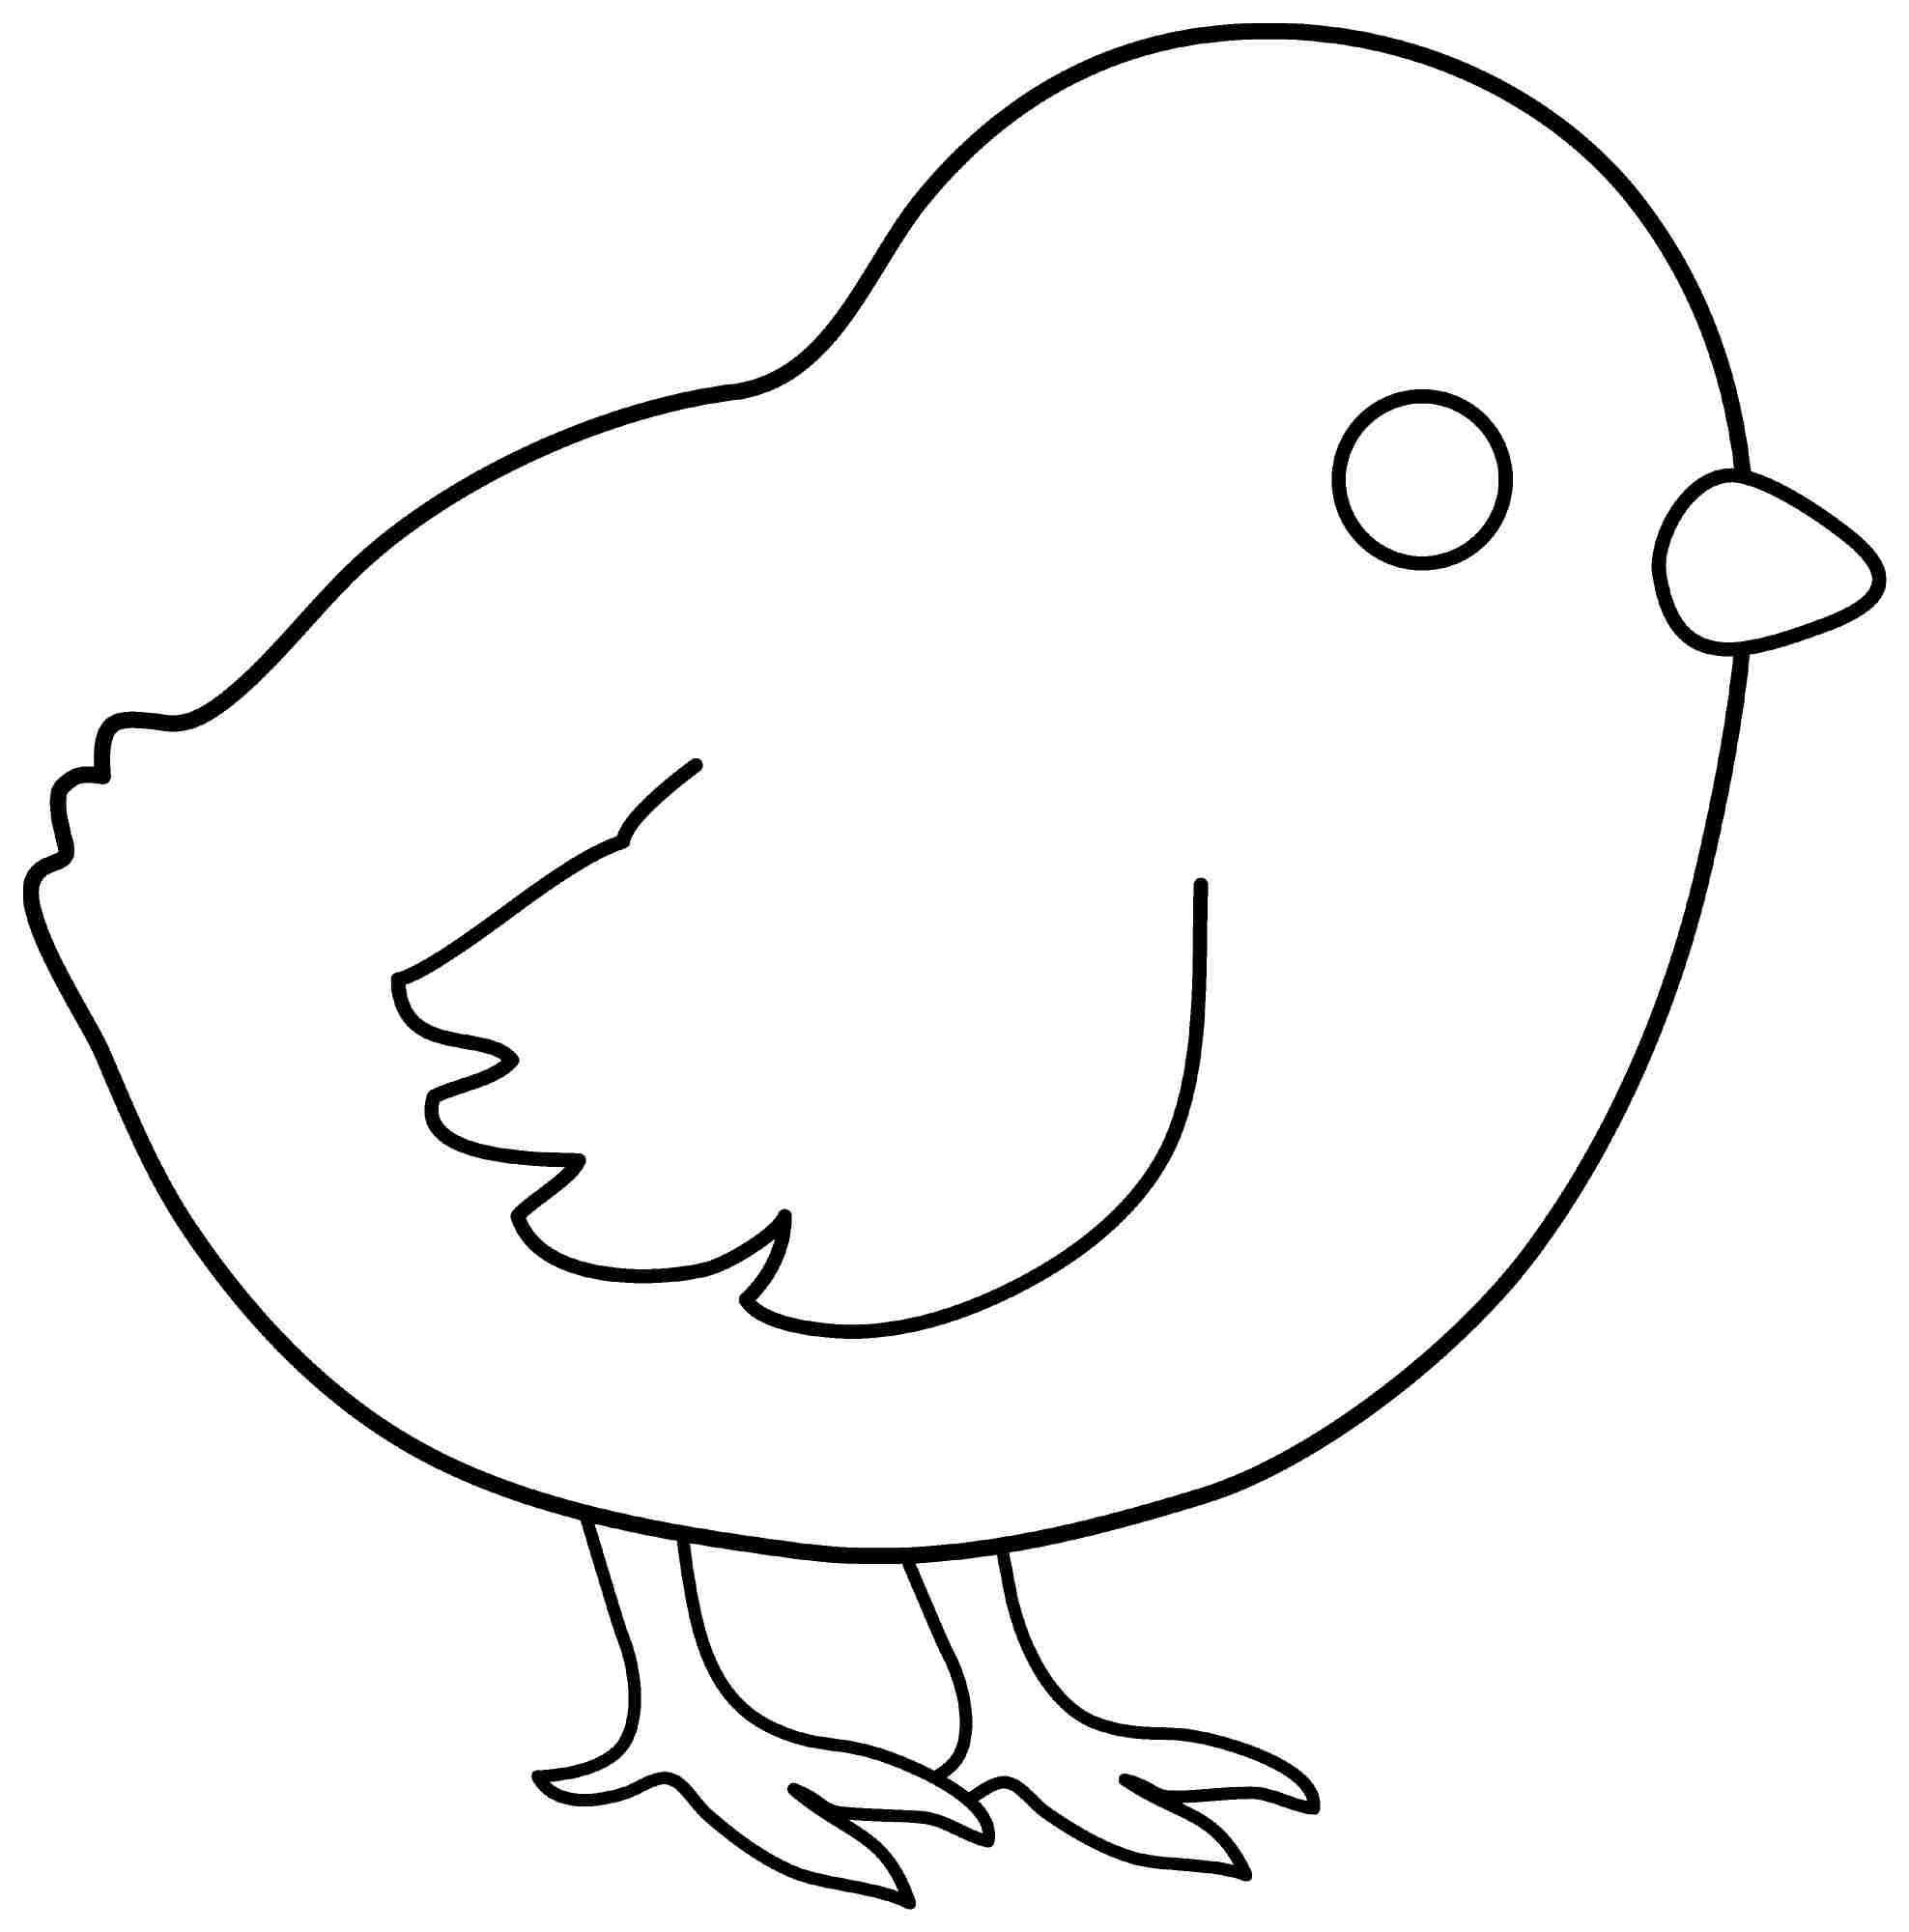 Printable Colouring Sheets Animal Chicken For Kids & Boys